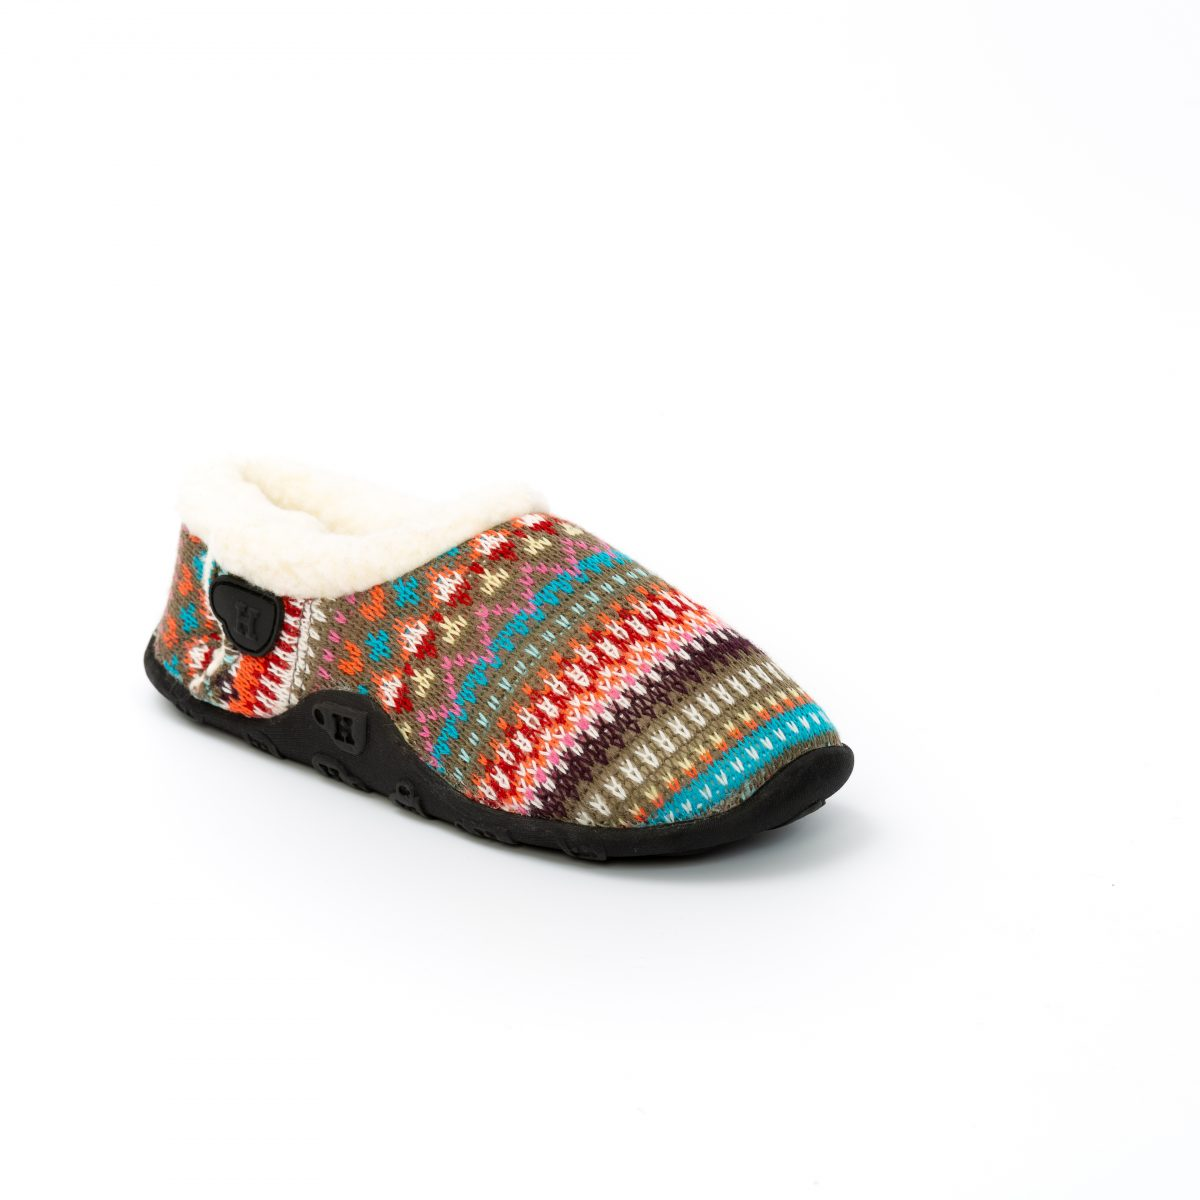 Erin-JNR-Grey-multi-pattern-1.jpg